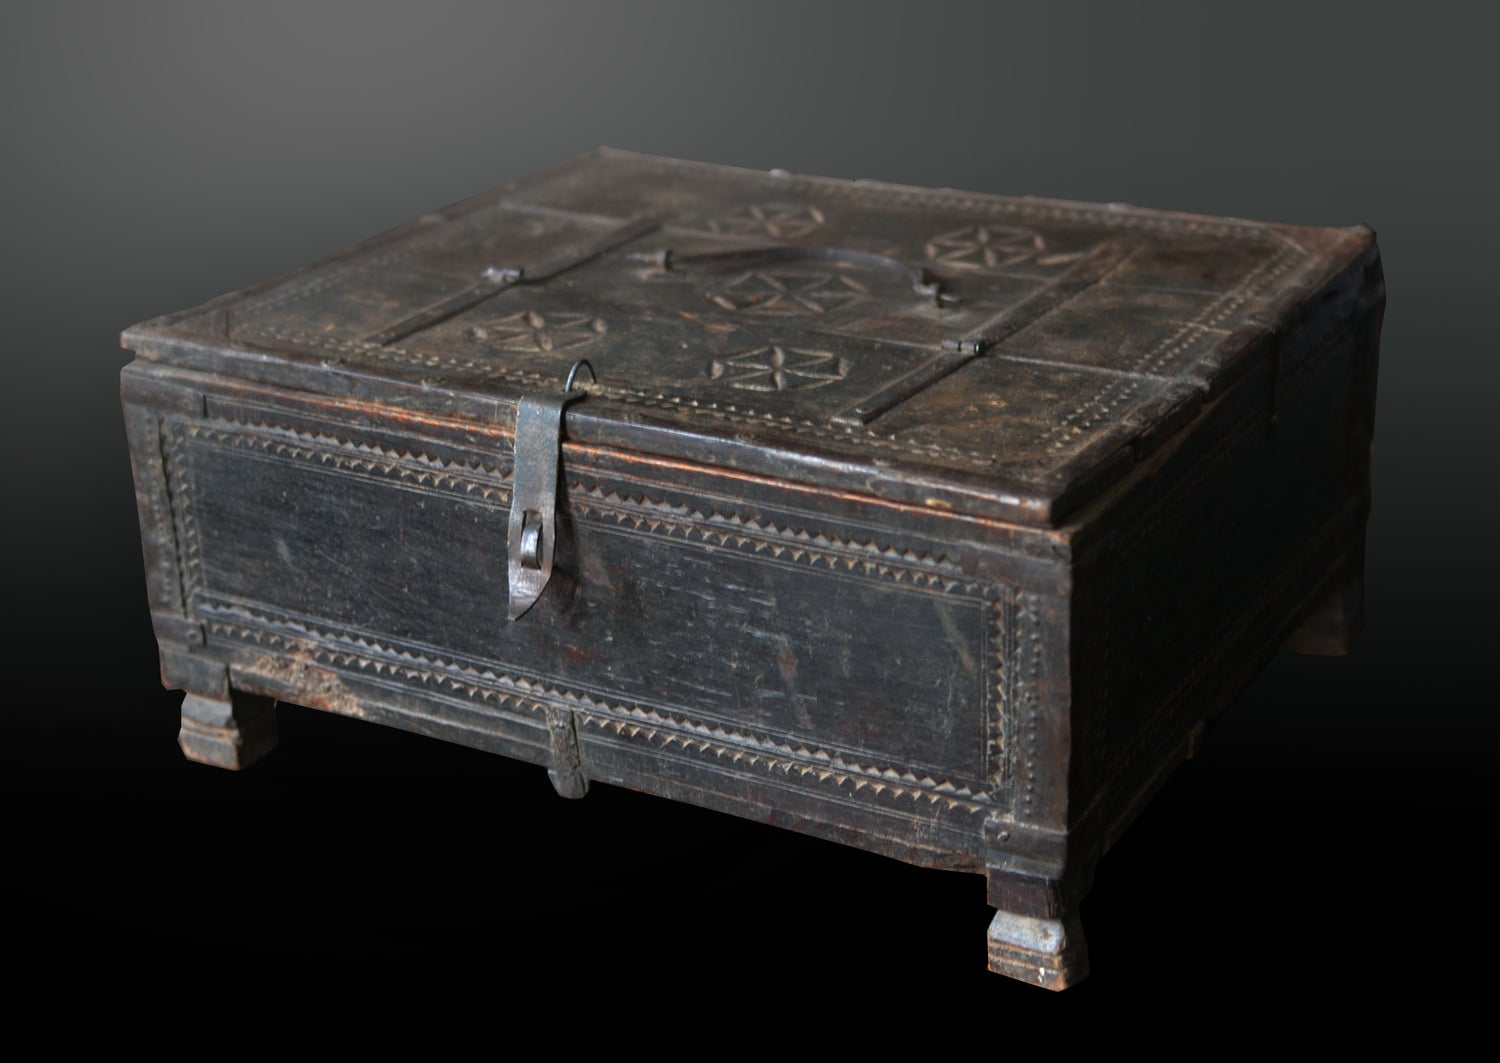 Image of 18th century Spanish-Moorish documents box